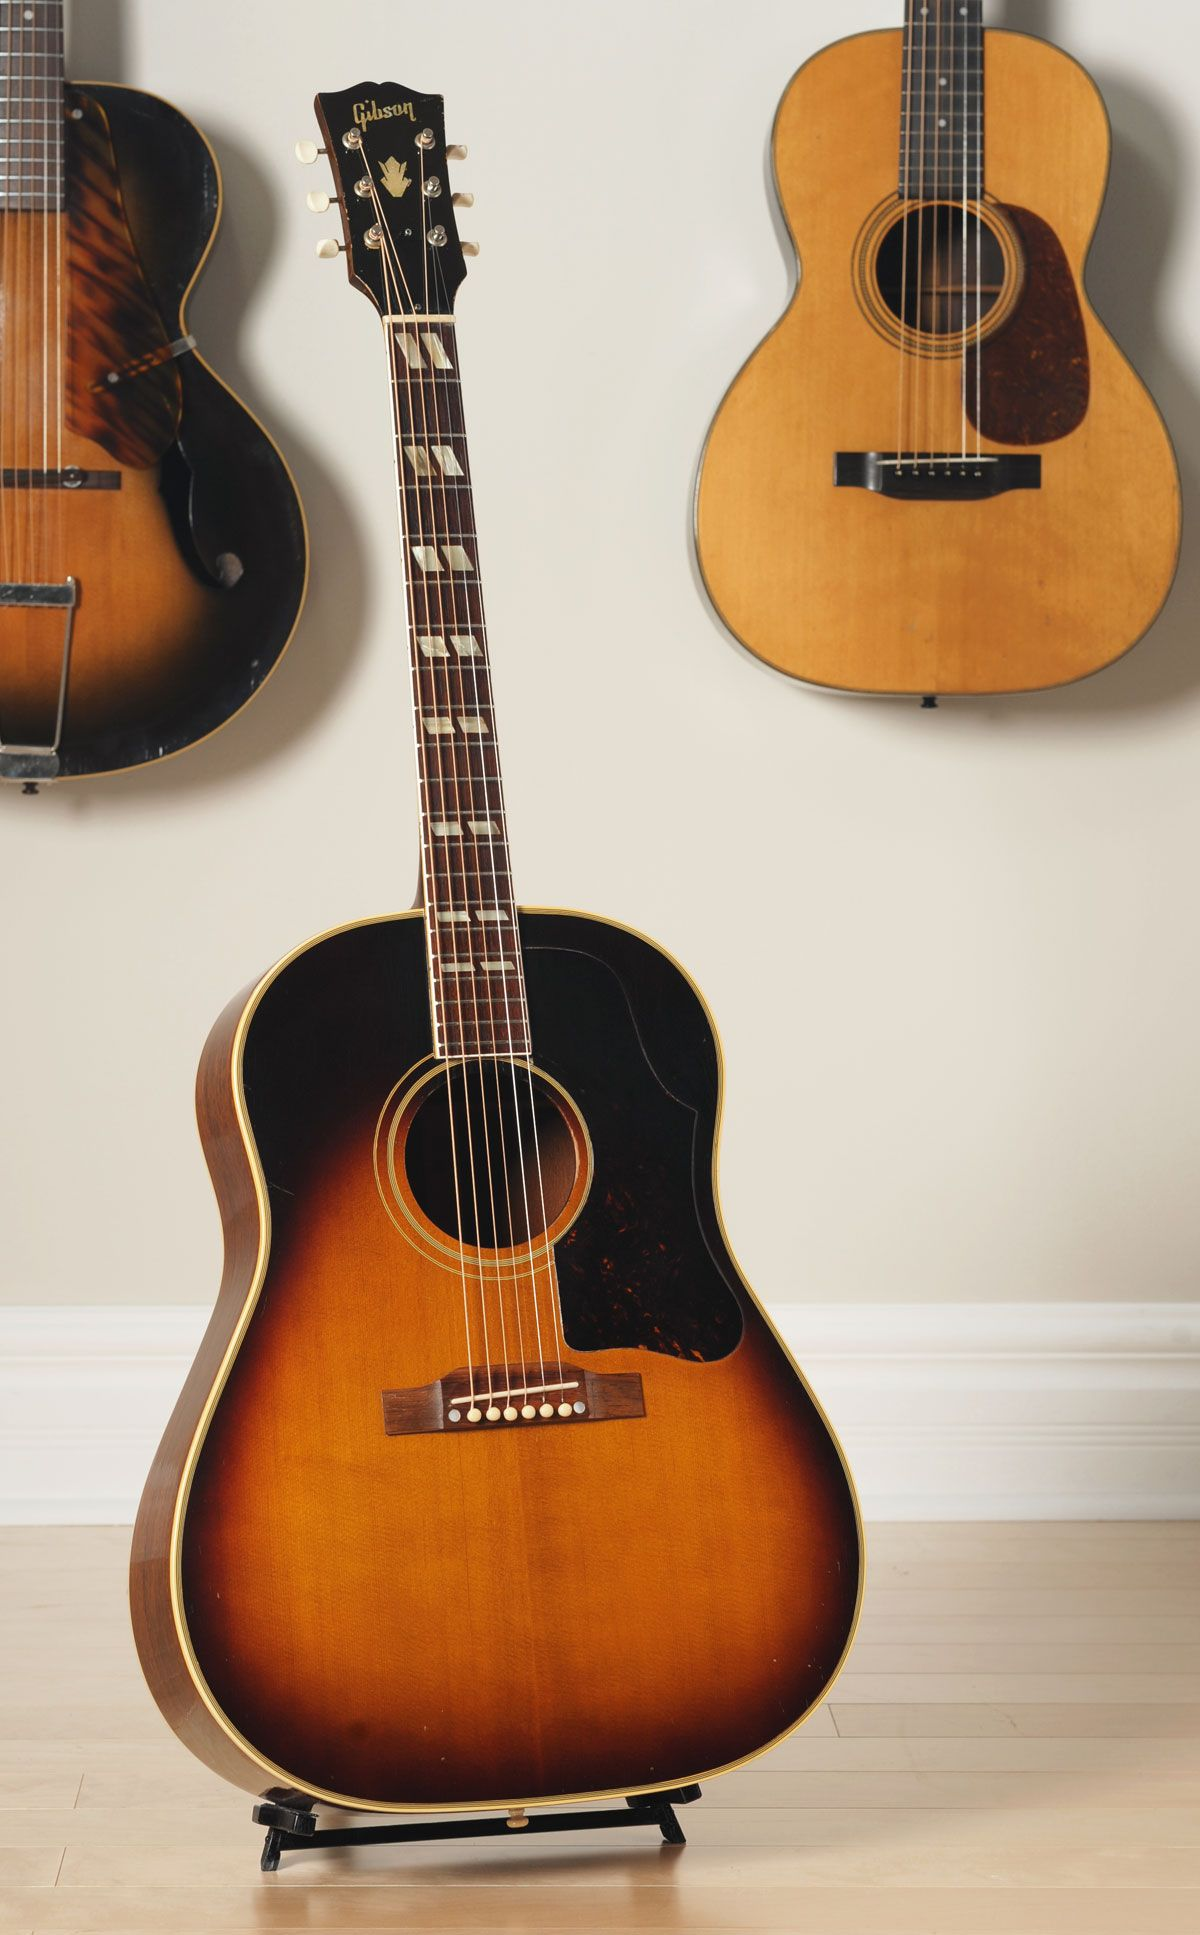 1956 gibson sj acoustics in 2019 guitar gibson acoustic semi acoustic guitar. Black Bedroom Furniture Sets. Home Design Ideas